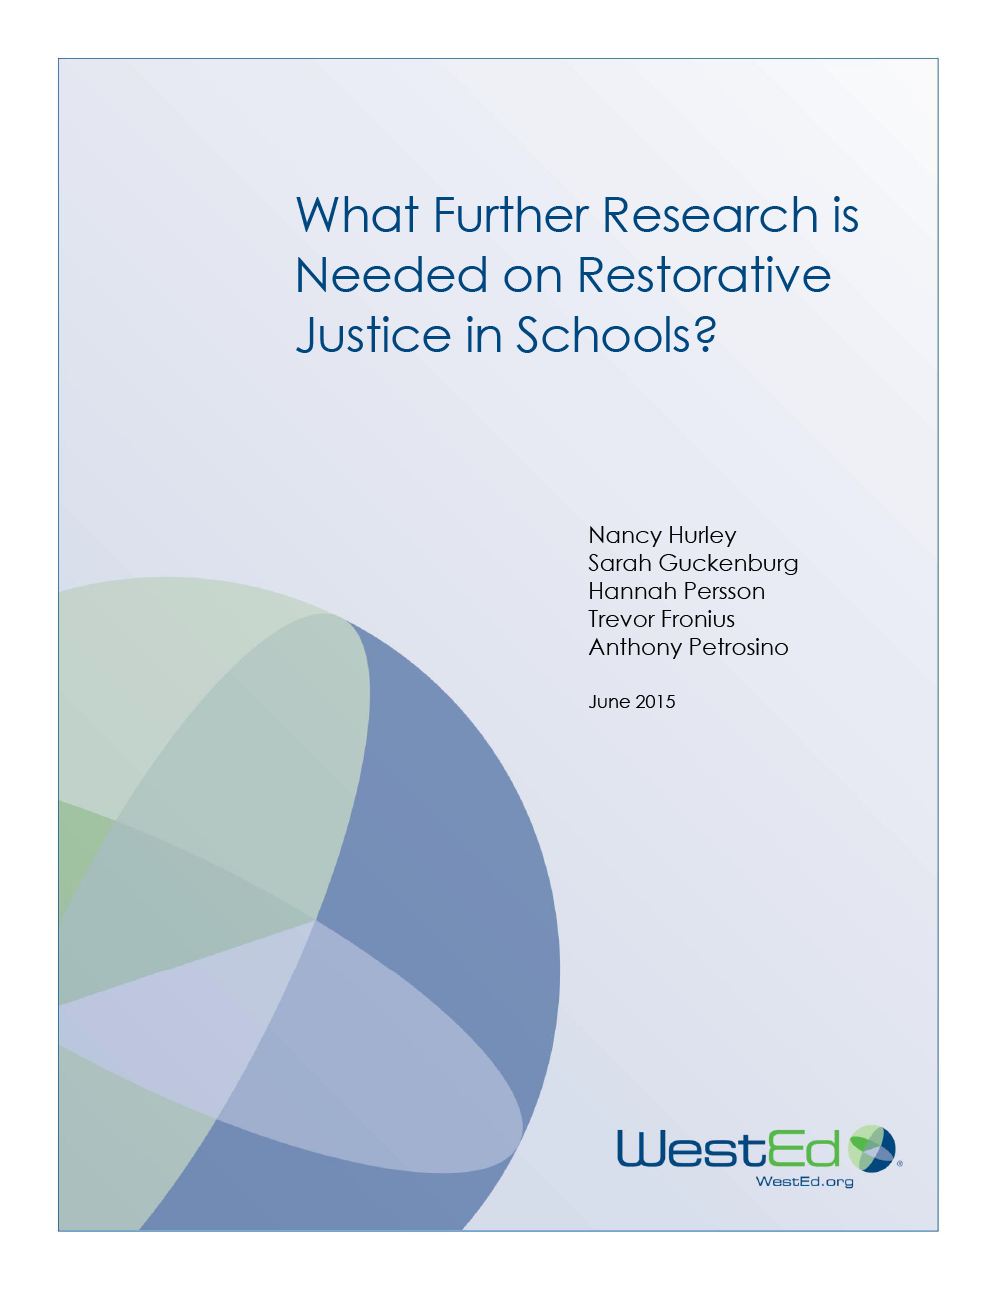 evaluation of restorative justice Programs labelled restorative do not automatically maintain a restorative vision that is, processes and outcomes may not be restorative for example, restitution may be added to incarceration in order to exact more retribution on the offender restitution would not serve restorative purposes, but retributive ones.